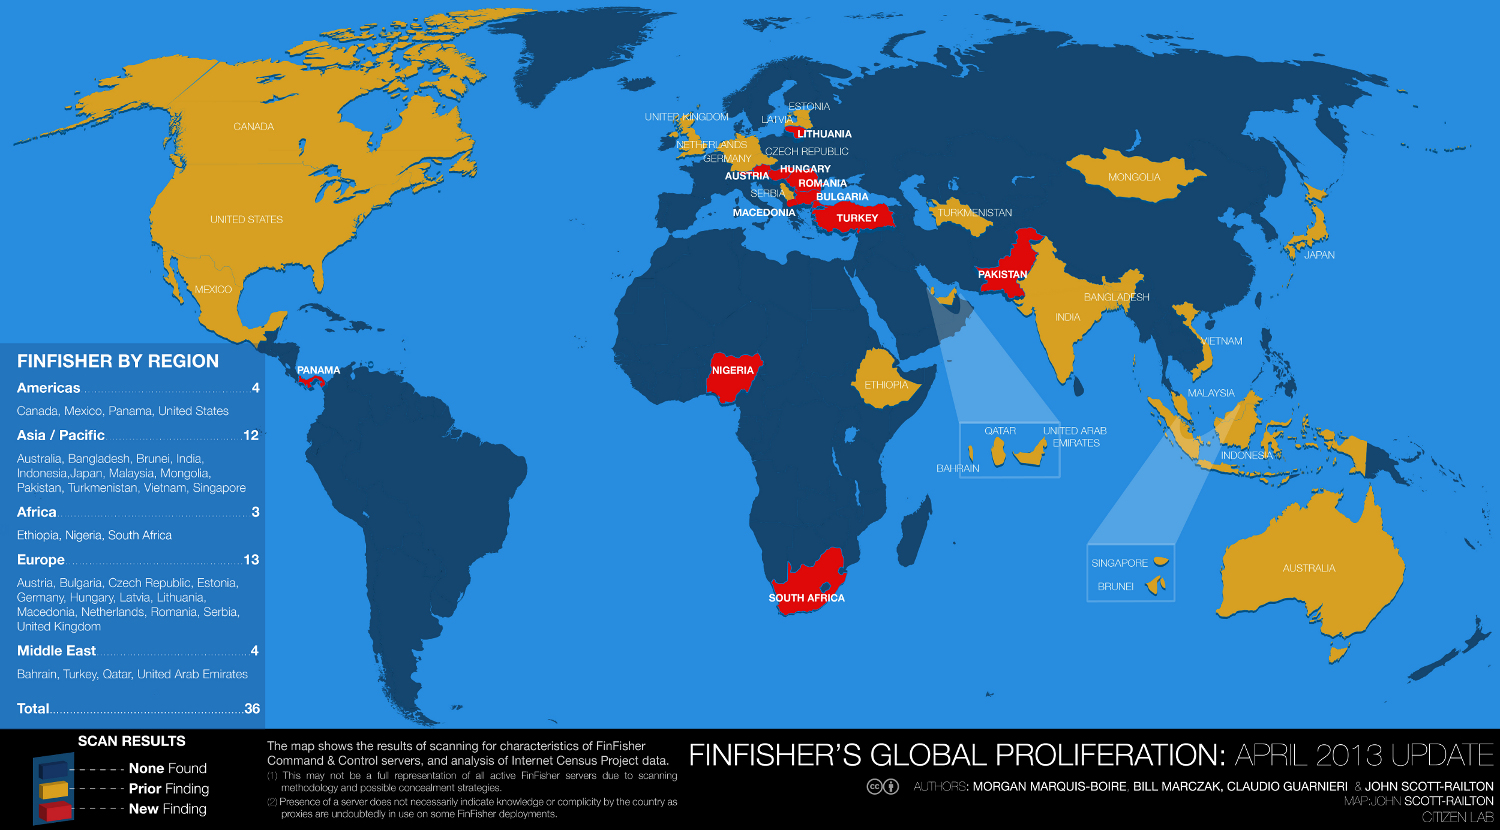 FinFisher's Global Proliferation: Updated Map